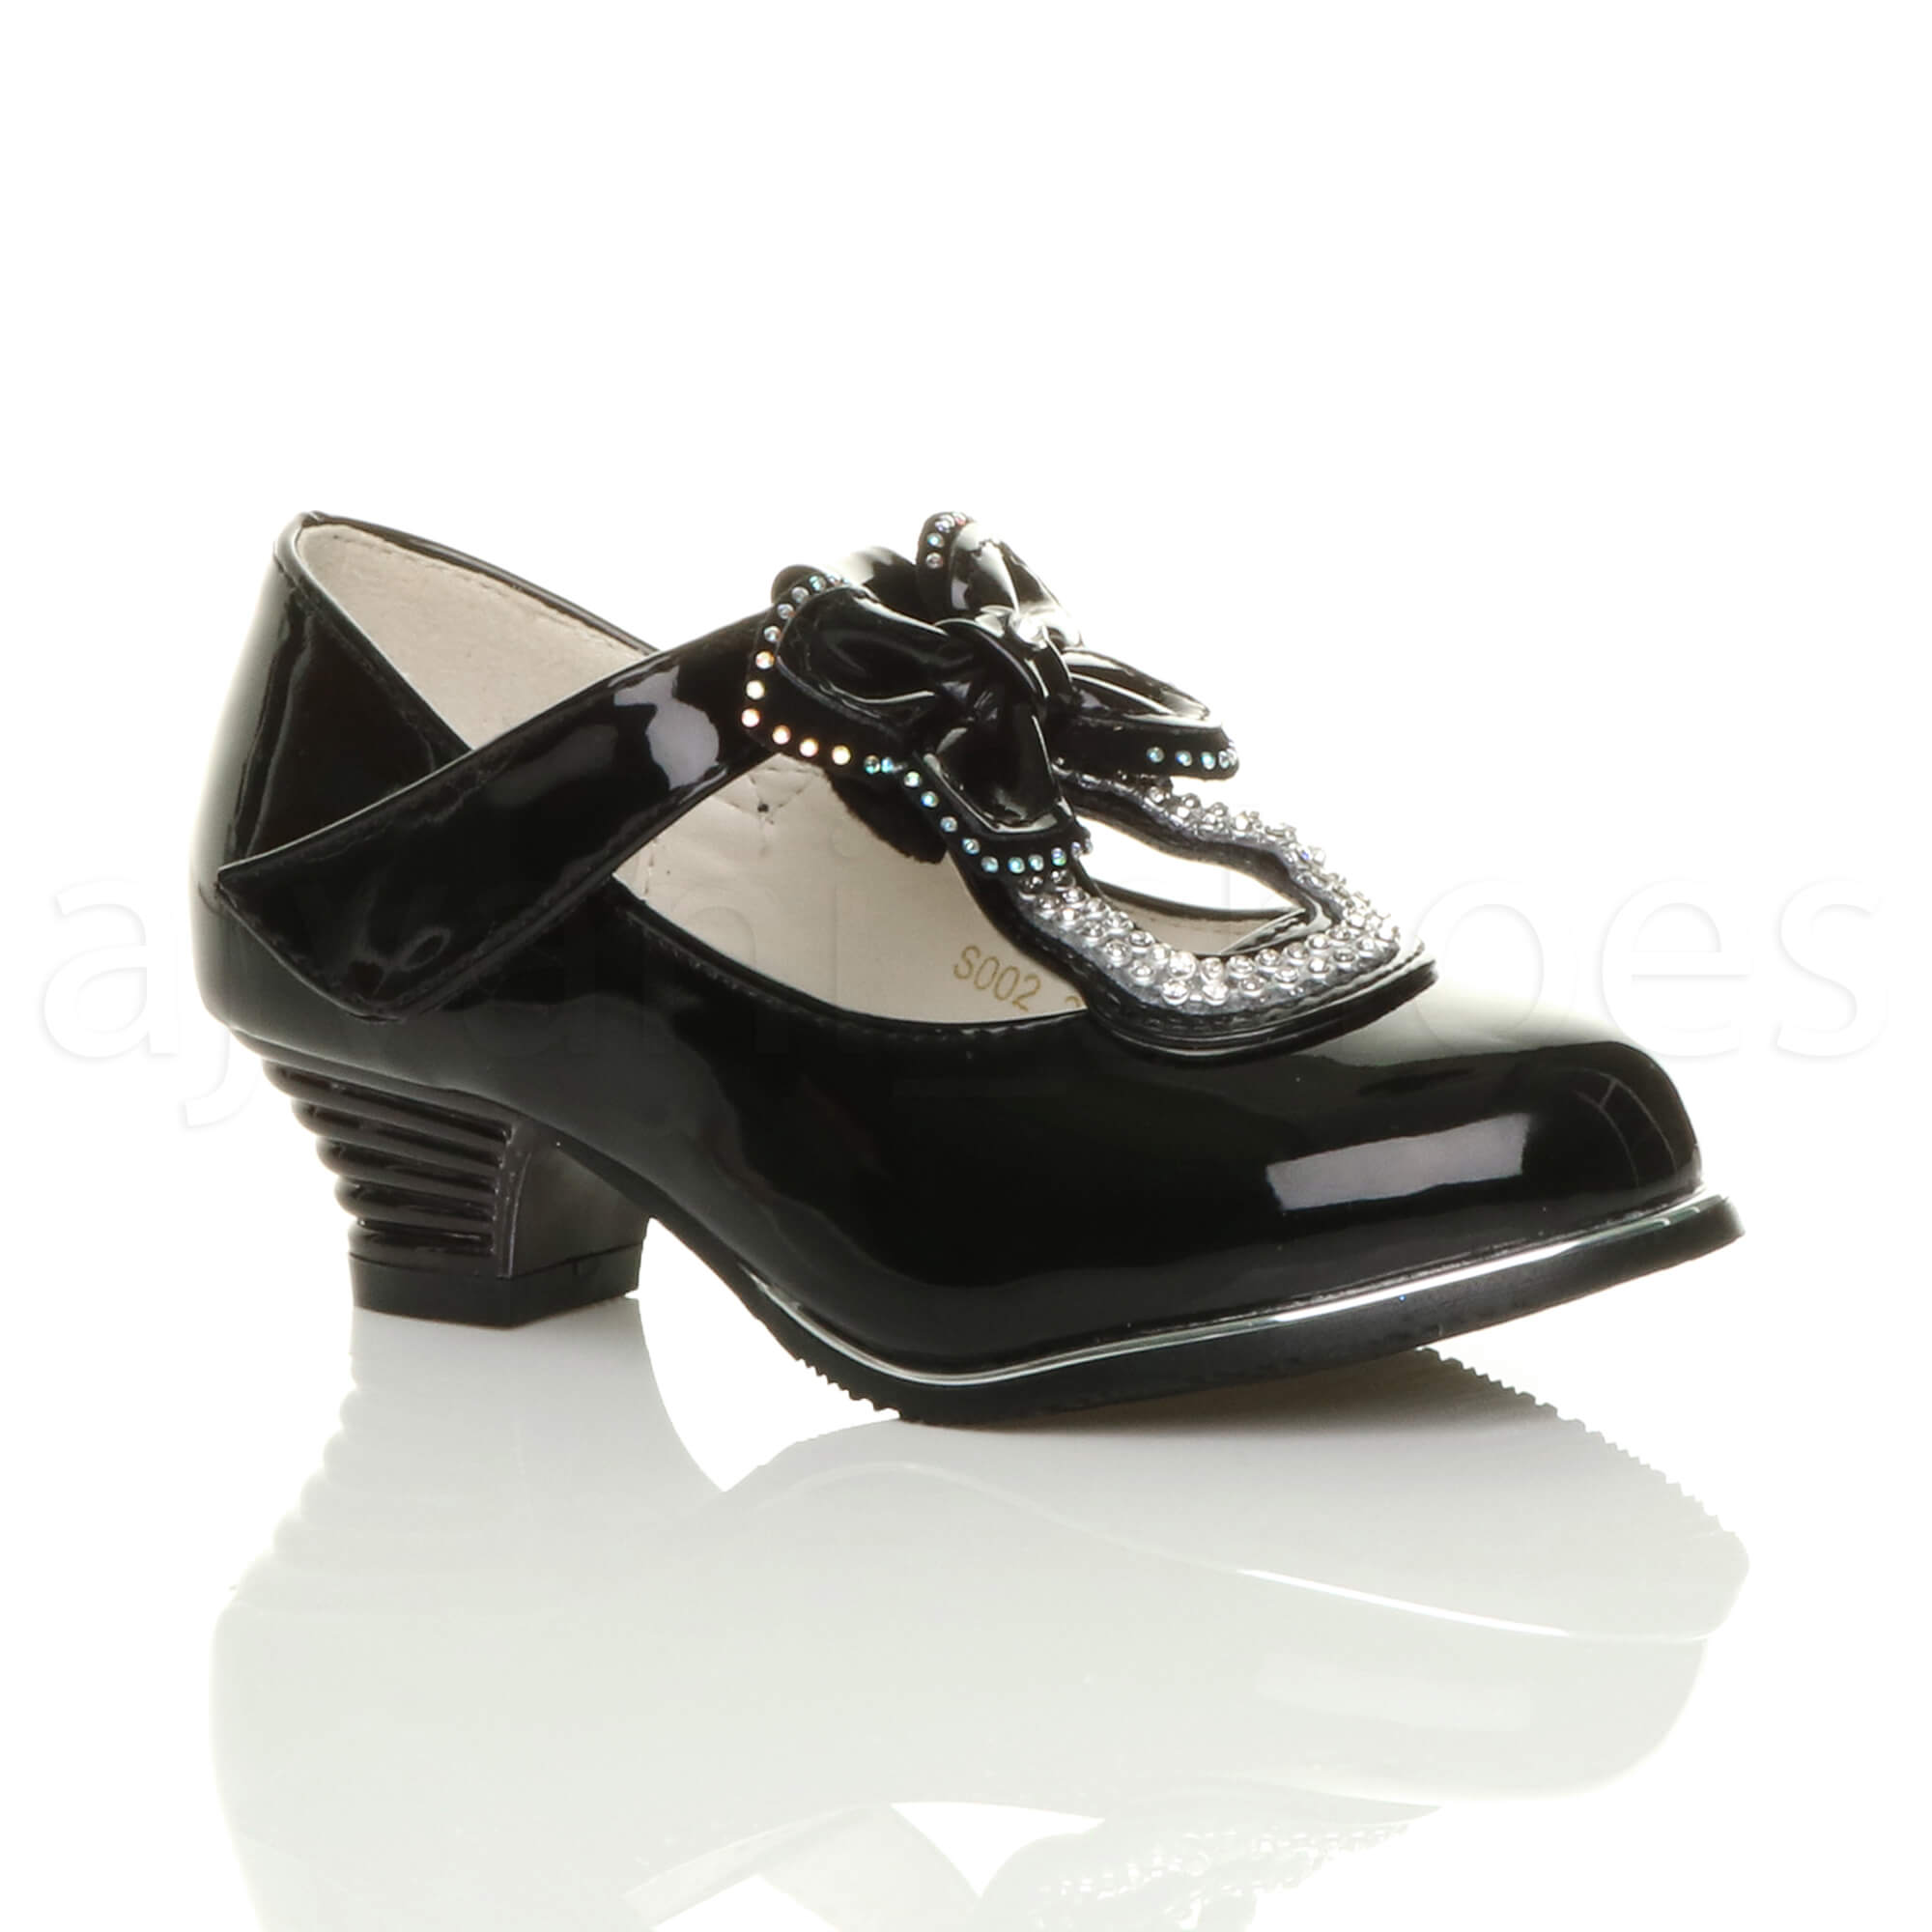 GIRLS-KIDS-CHILDRENS-LOW-HEEL-T-BAR-BUTTERFLY-BOW-DIAMANTE-MARY-JANE-SHOES-SIZE